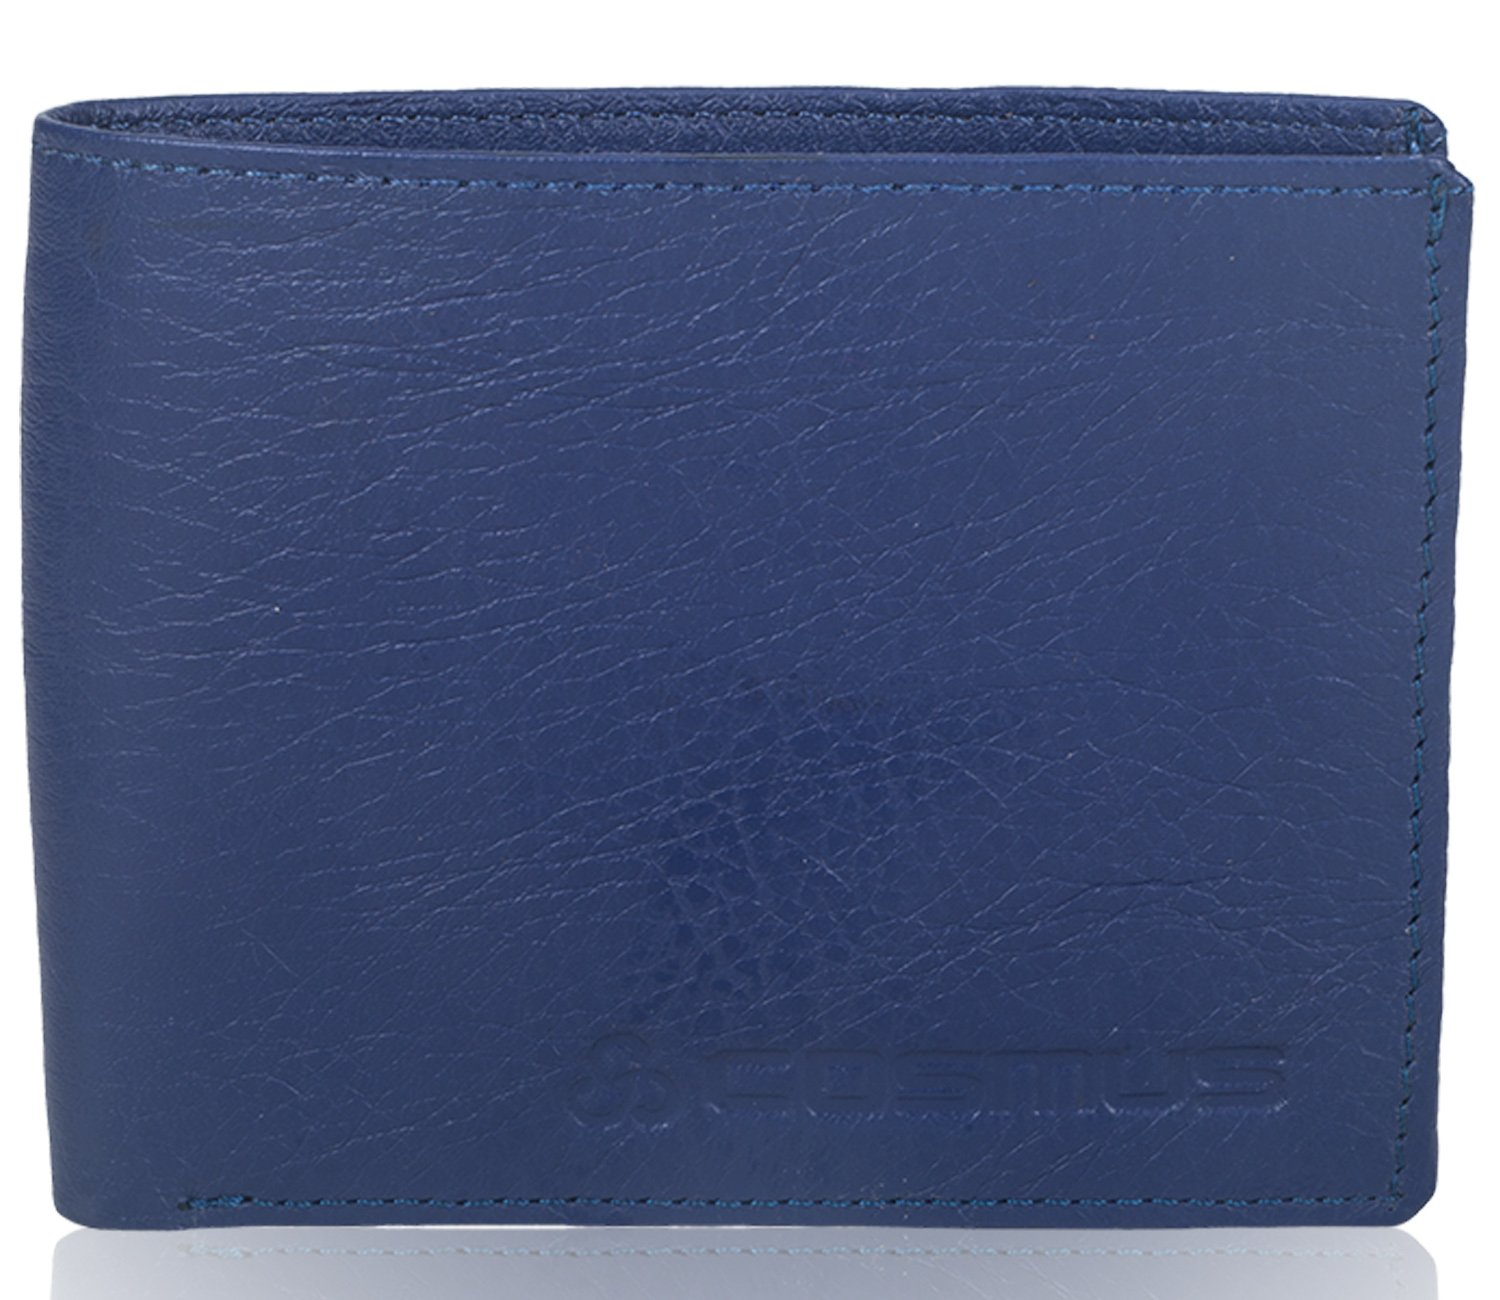 25b2a65ad2b9 Gents Wallet - Leather Wallet for Men - Cosmus 100% Original Genuine  Leather Wallet - LW-0009 - Blue  Amazon.in  Bags